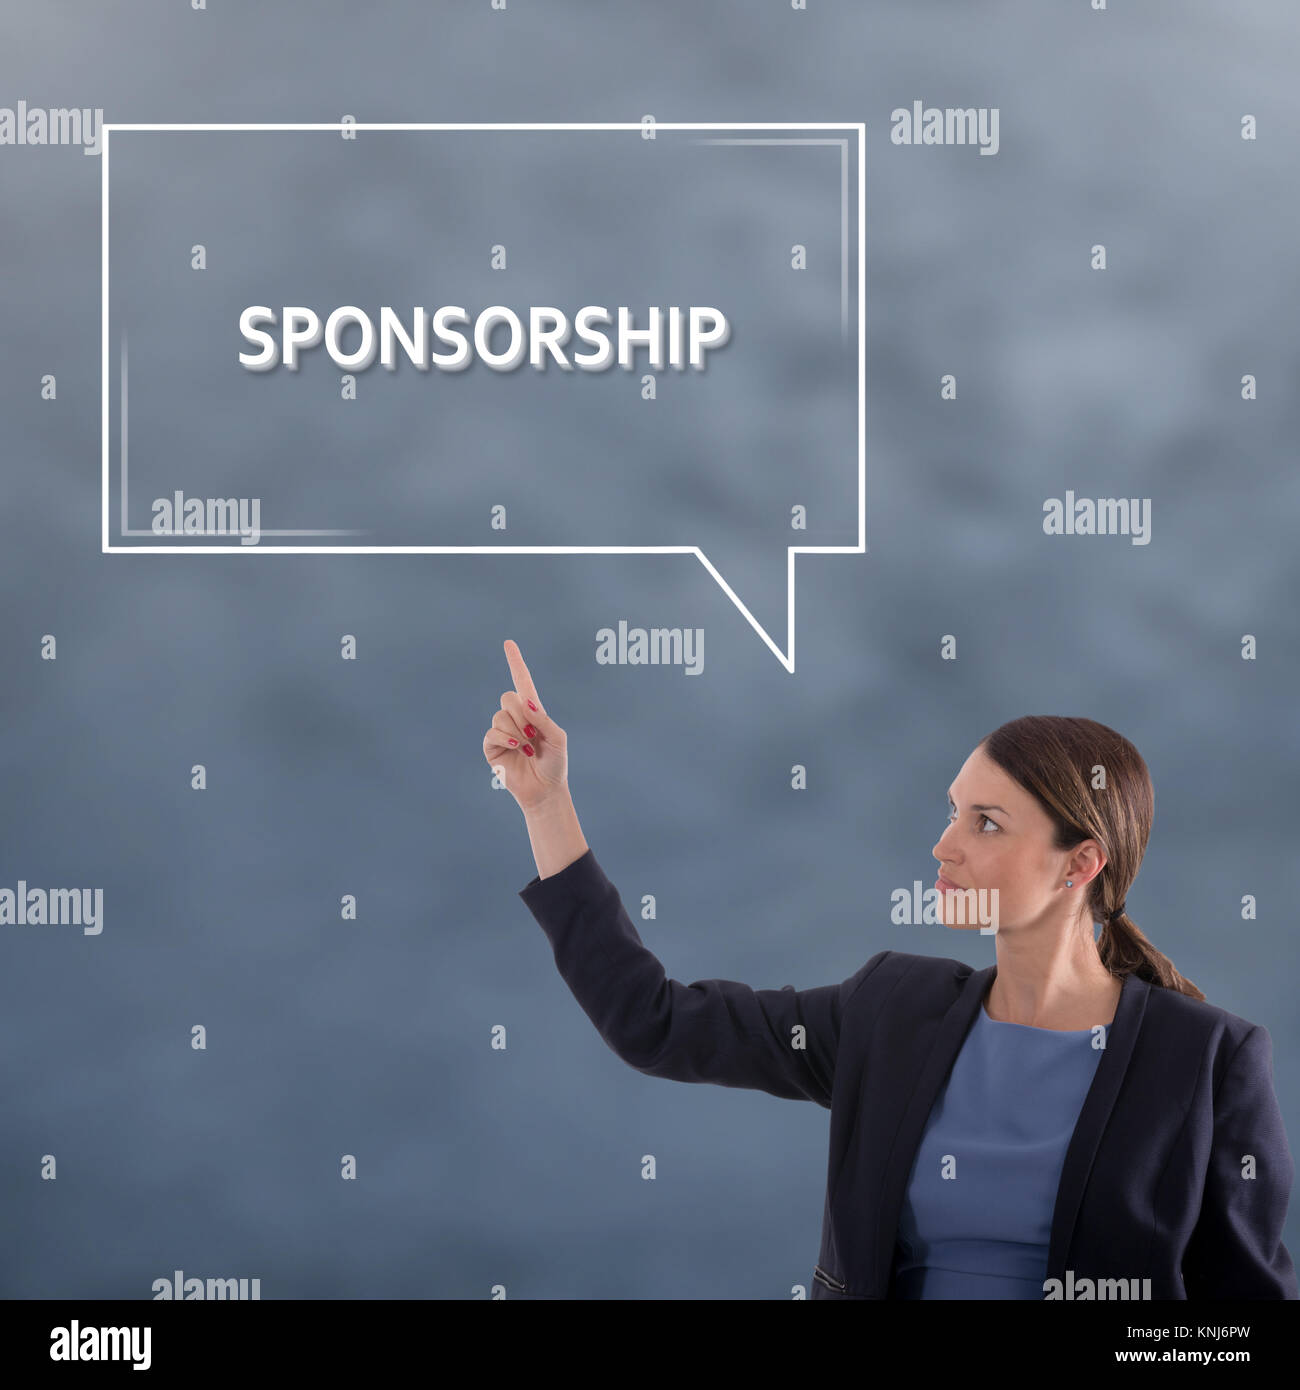 SPONSORSHIP Business Concept. Business Woman Graphic Concept - Stock Image